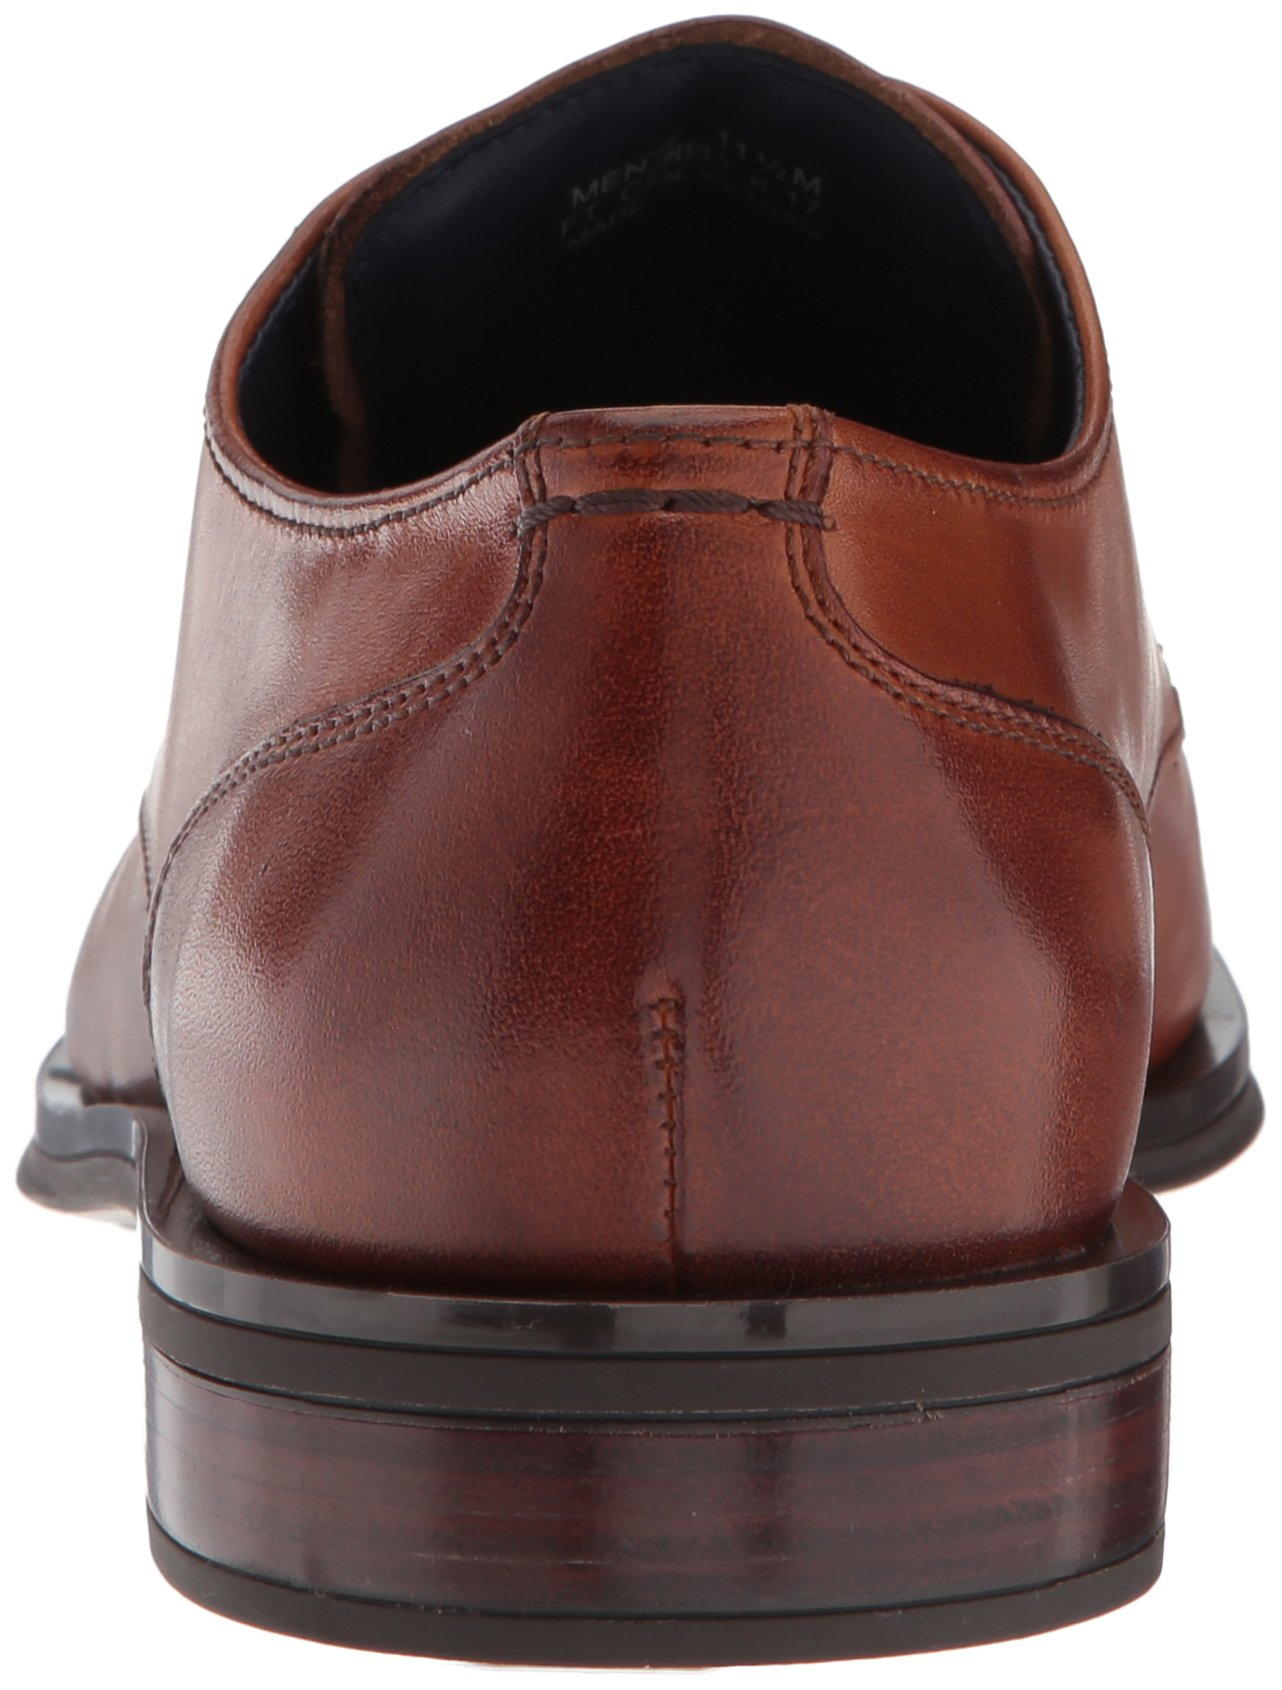 Cole Haan Men's Dawes Grand Cap Toe Oxford, British Tan, 11 Medium US by Cole Haan (Image #2)